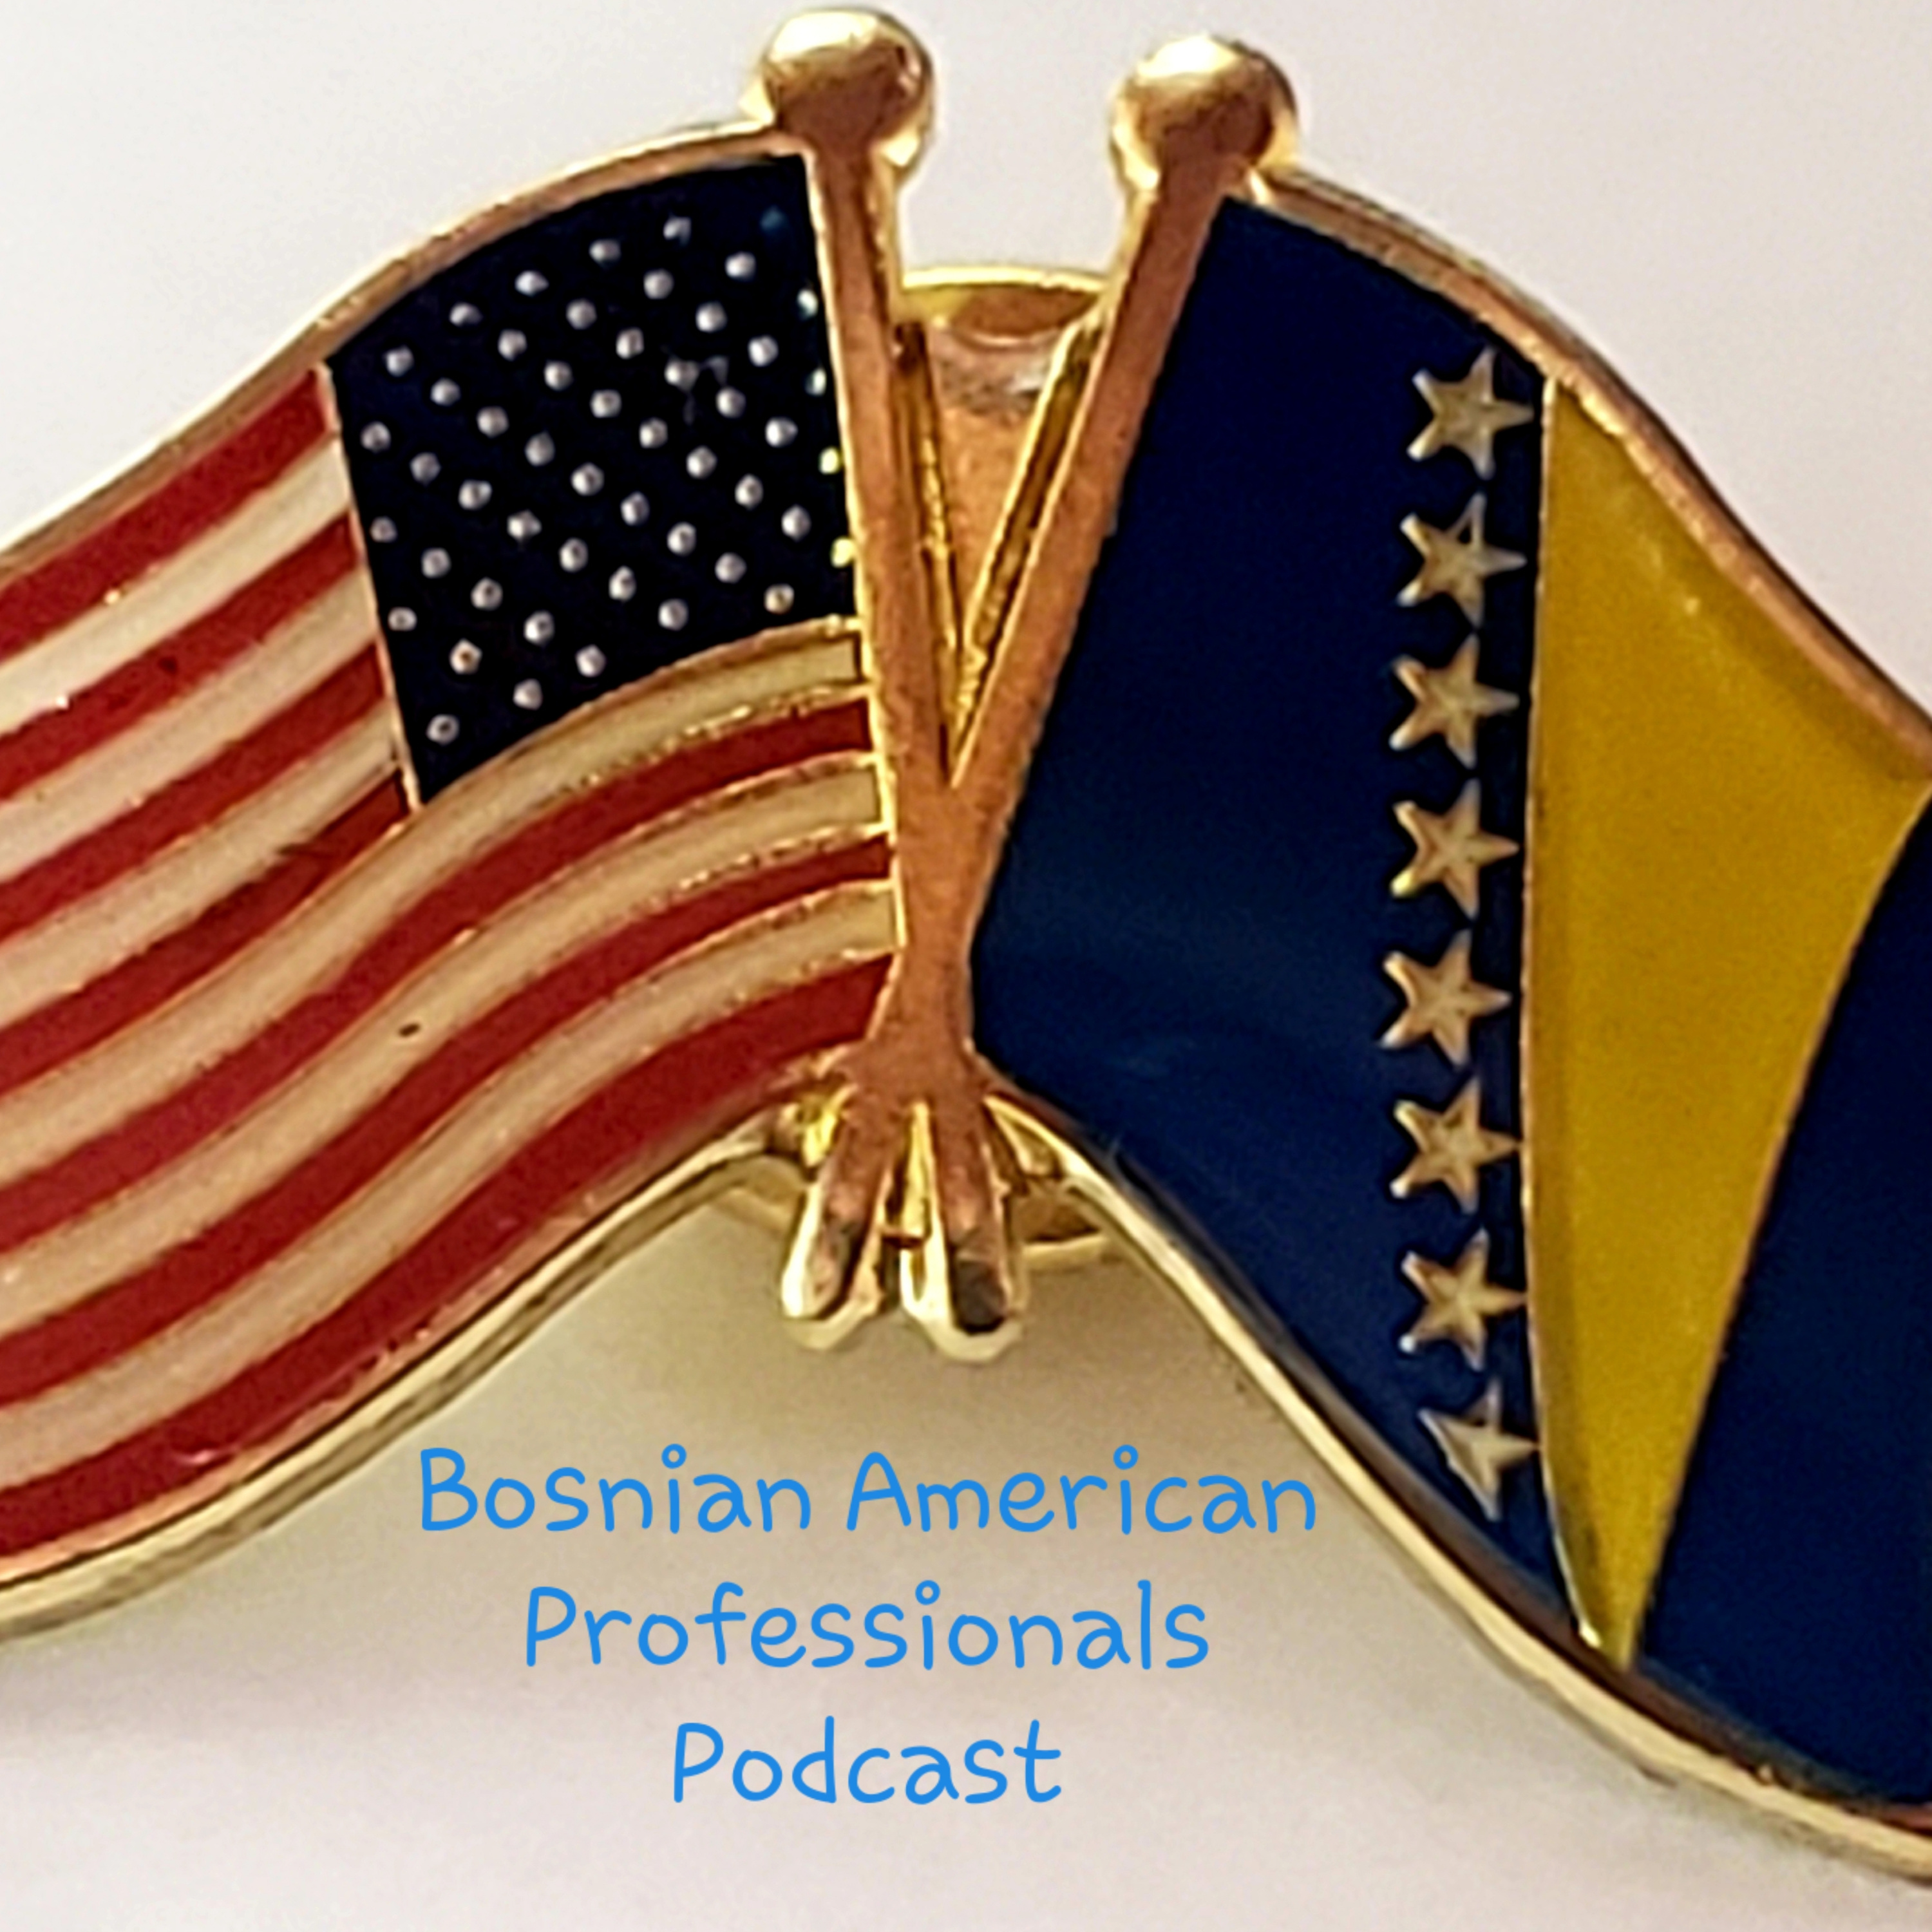 001-Intro to Bosnian American Professionals Podcast